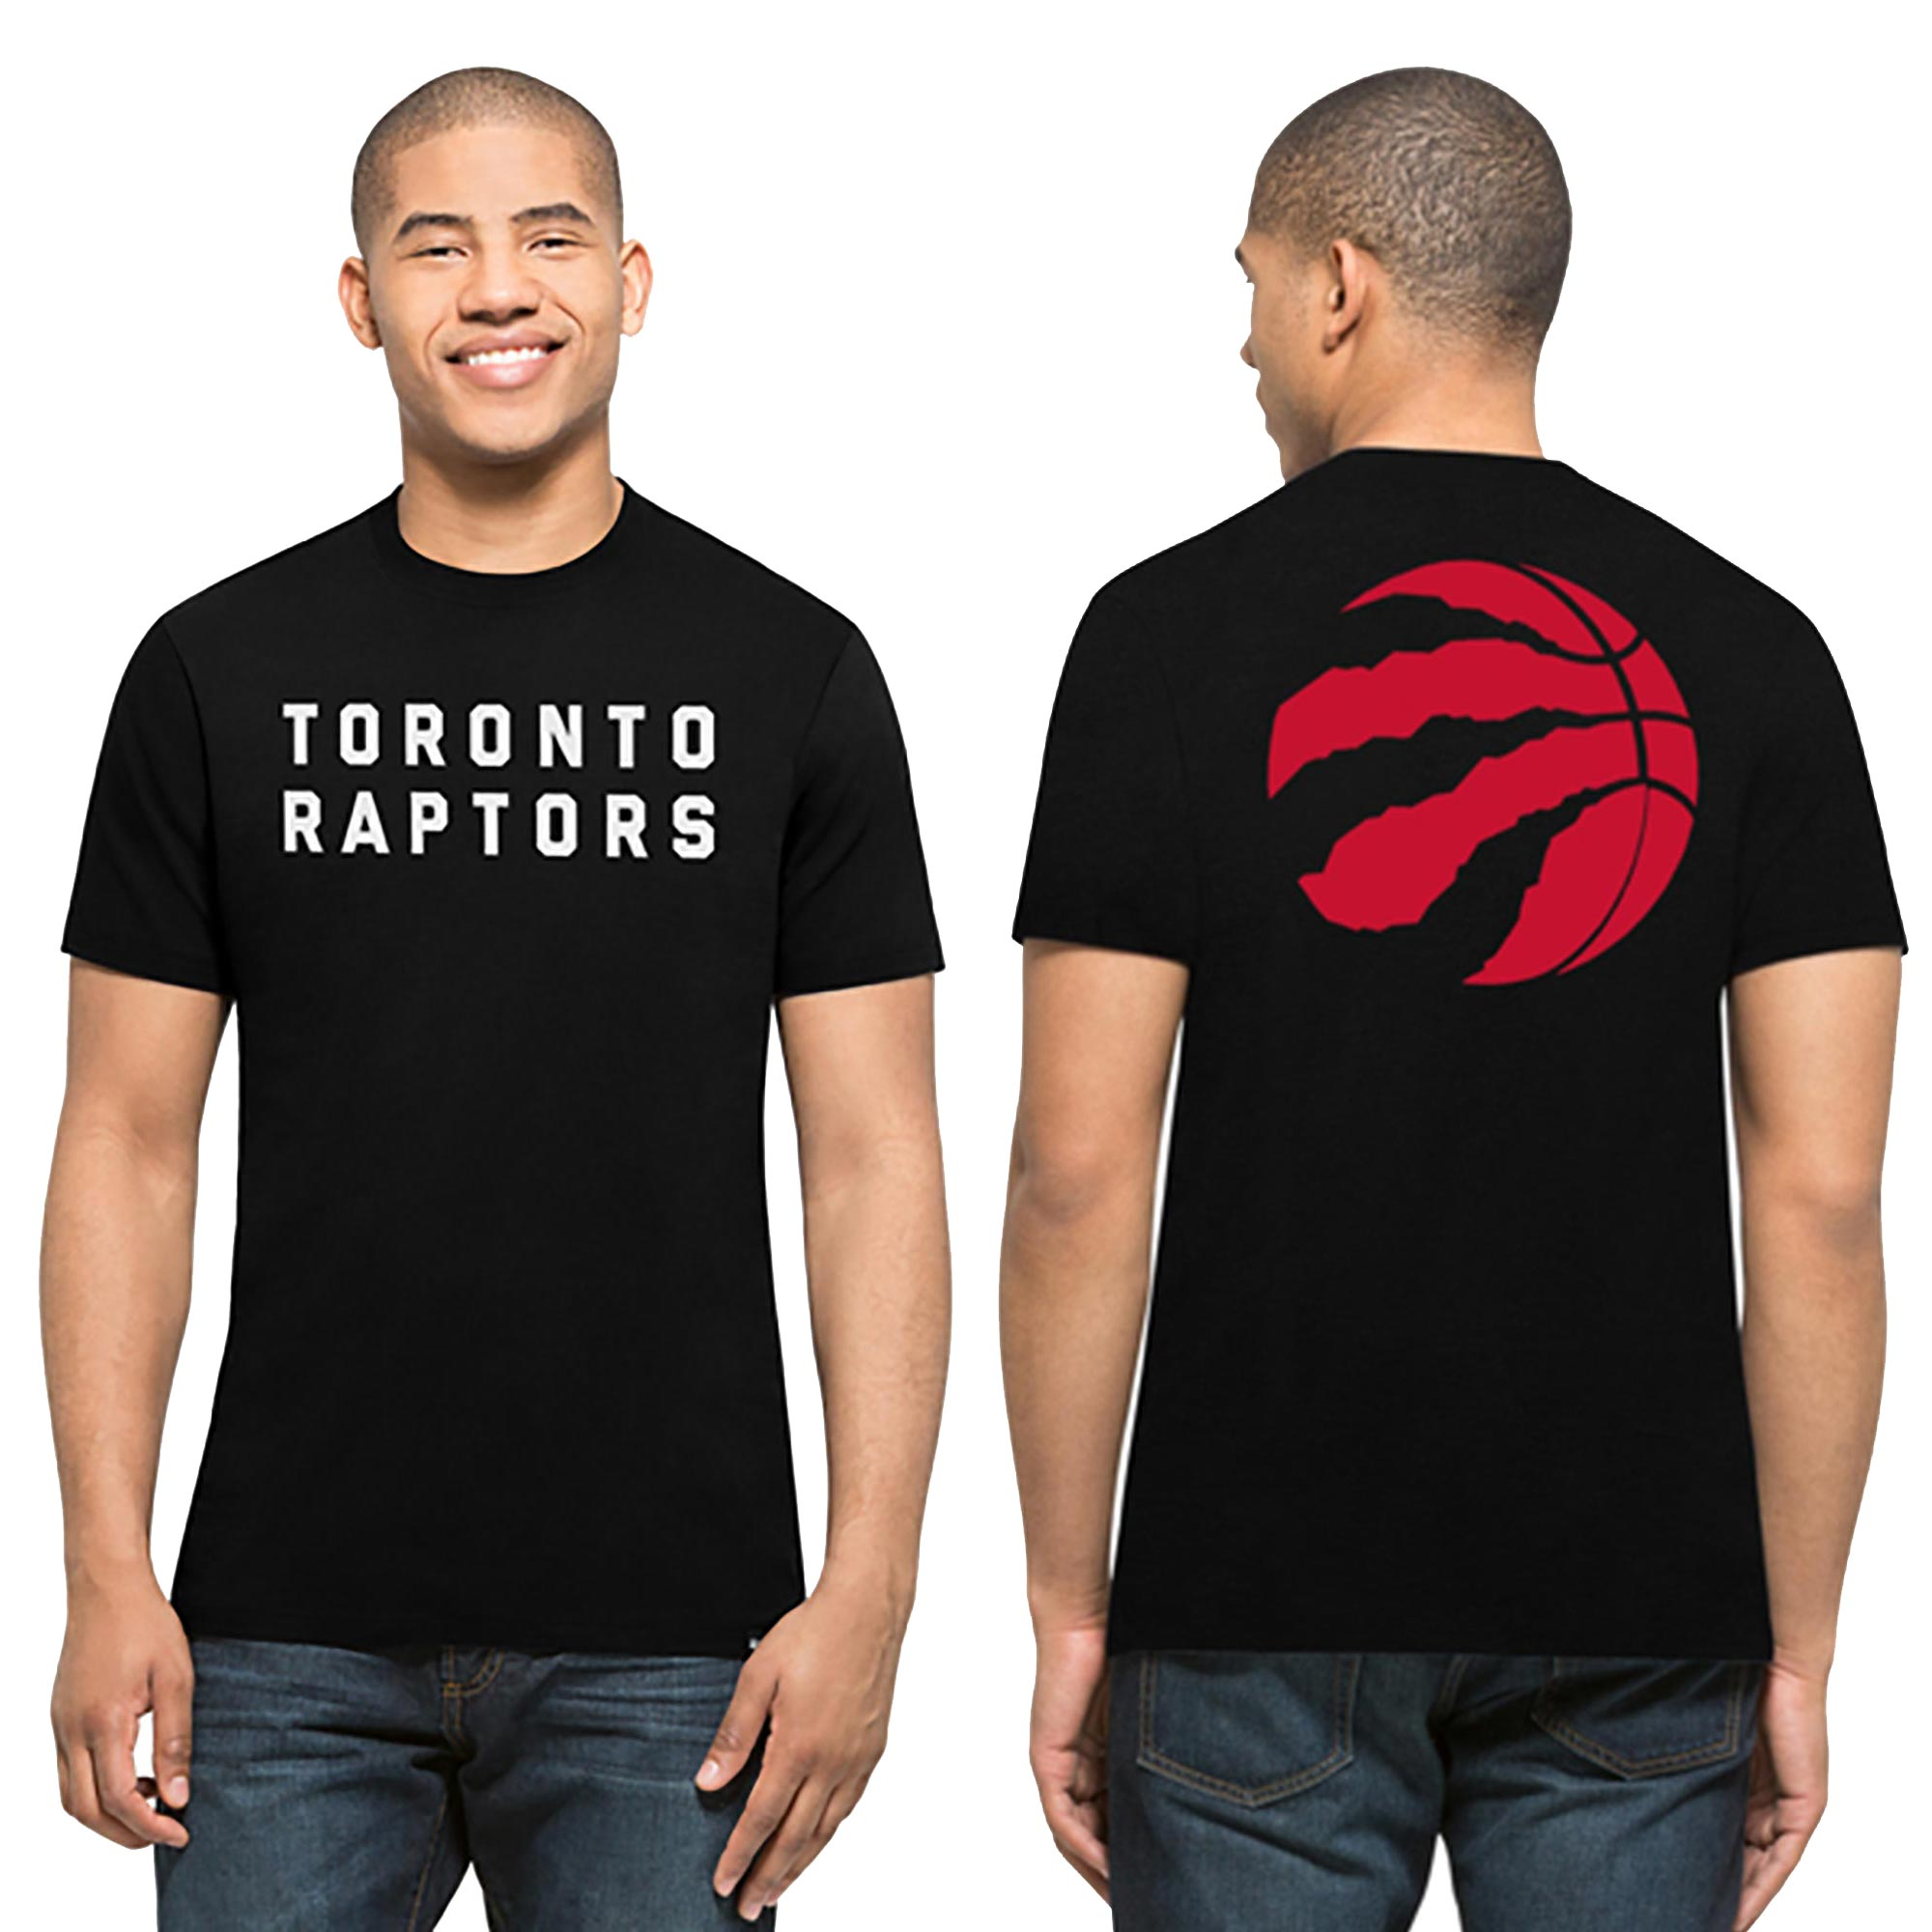 Toronto Raptors 47 Core Splitter T-Shirt - Mens